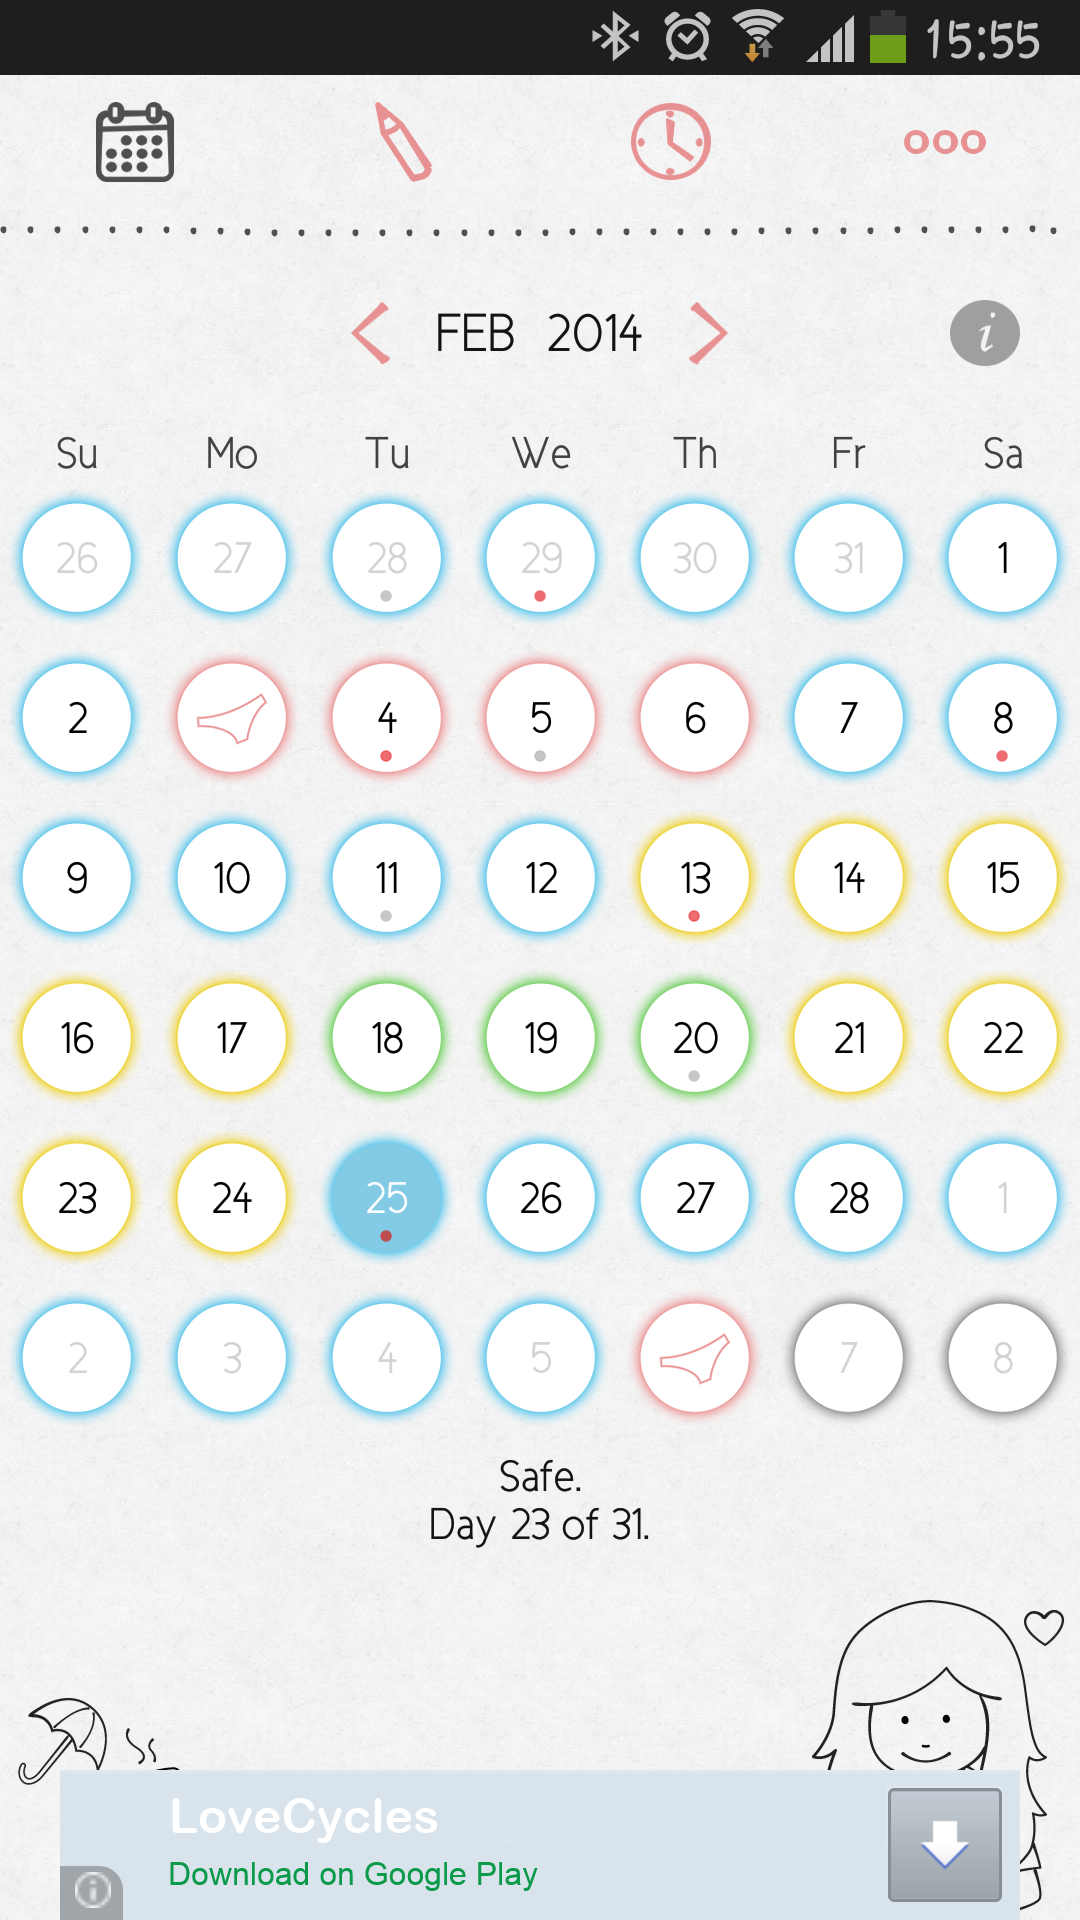 Amazoncom Lovecycles Menstrual Calendar Appstore For Android